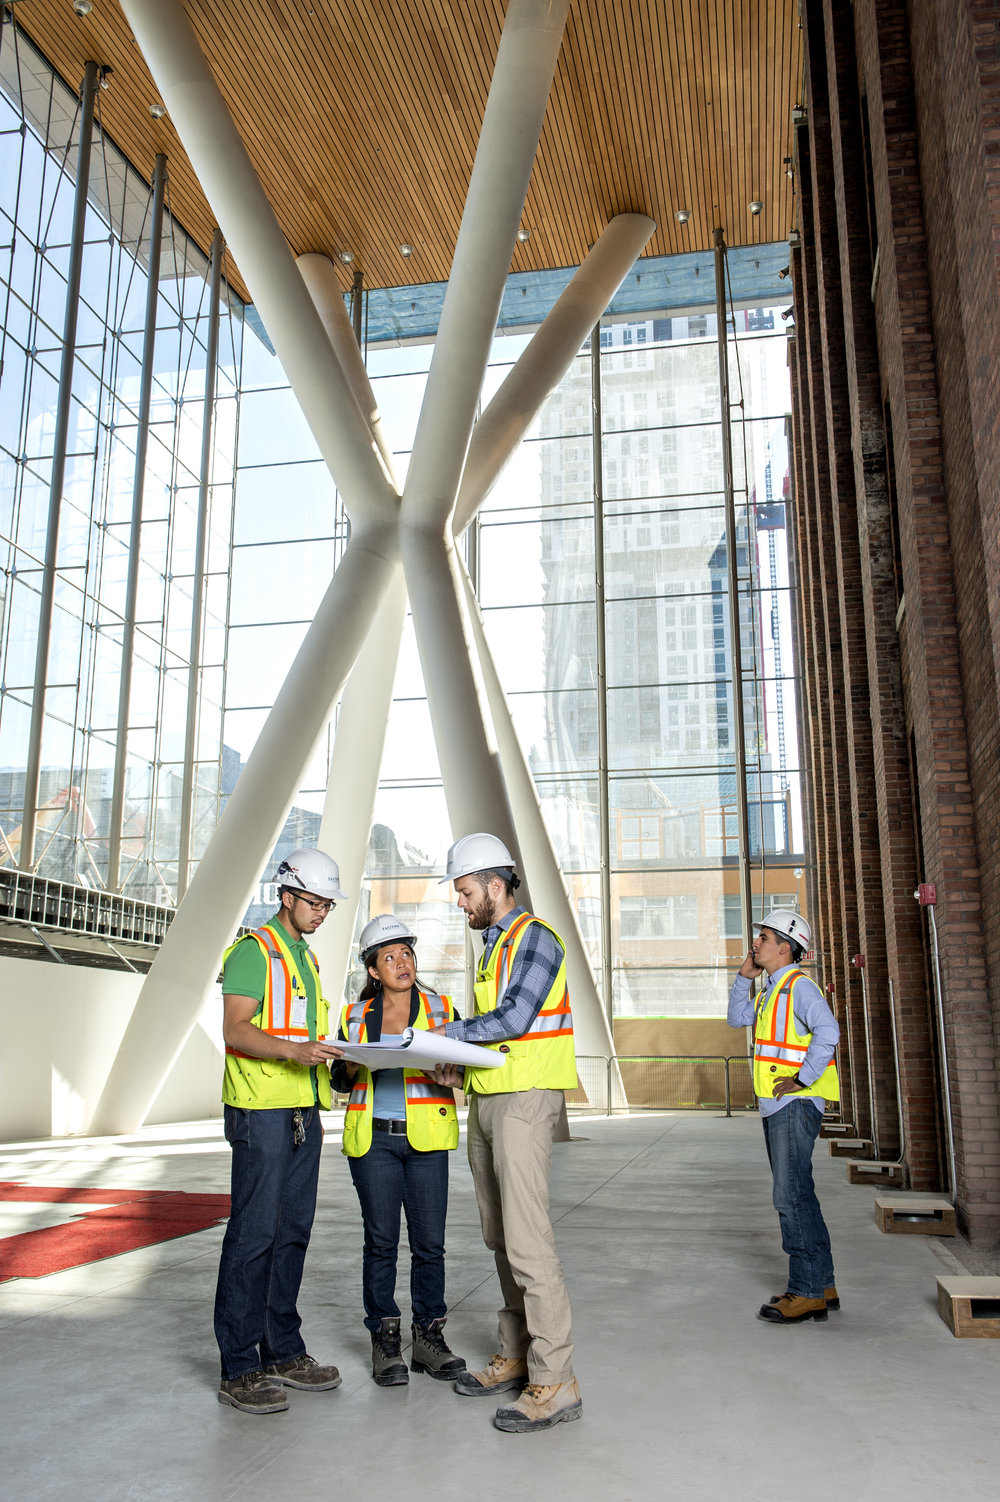 Marta-Hewson-industrial-photography-on-site-lobby-Kitestring-Eastern-Construction.jpg